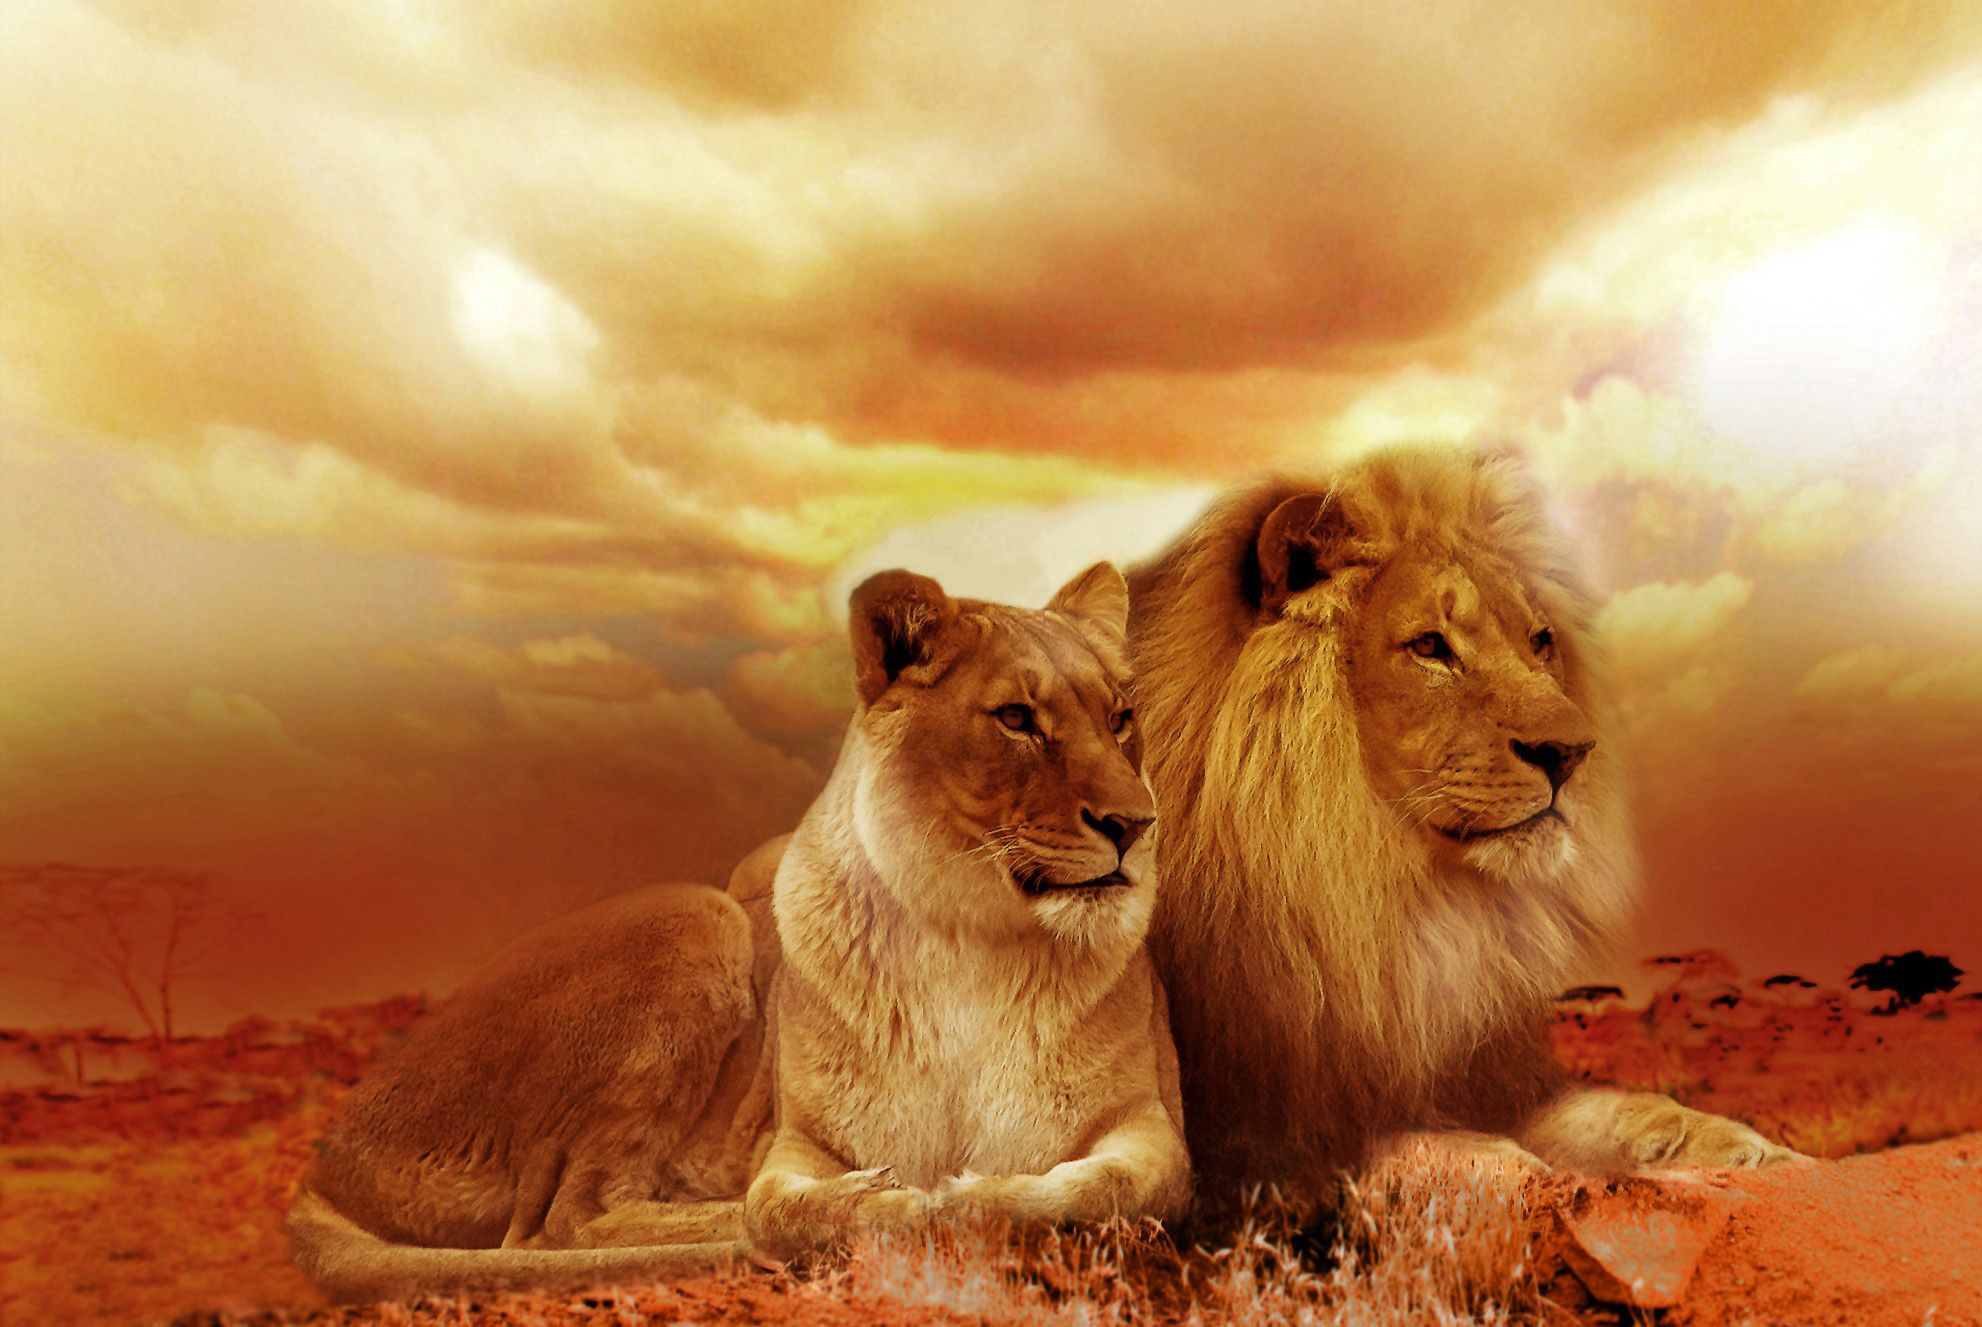 Lion and Lioness sunset